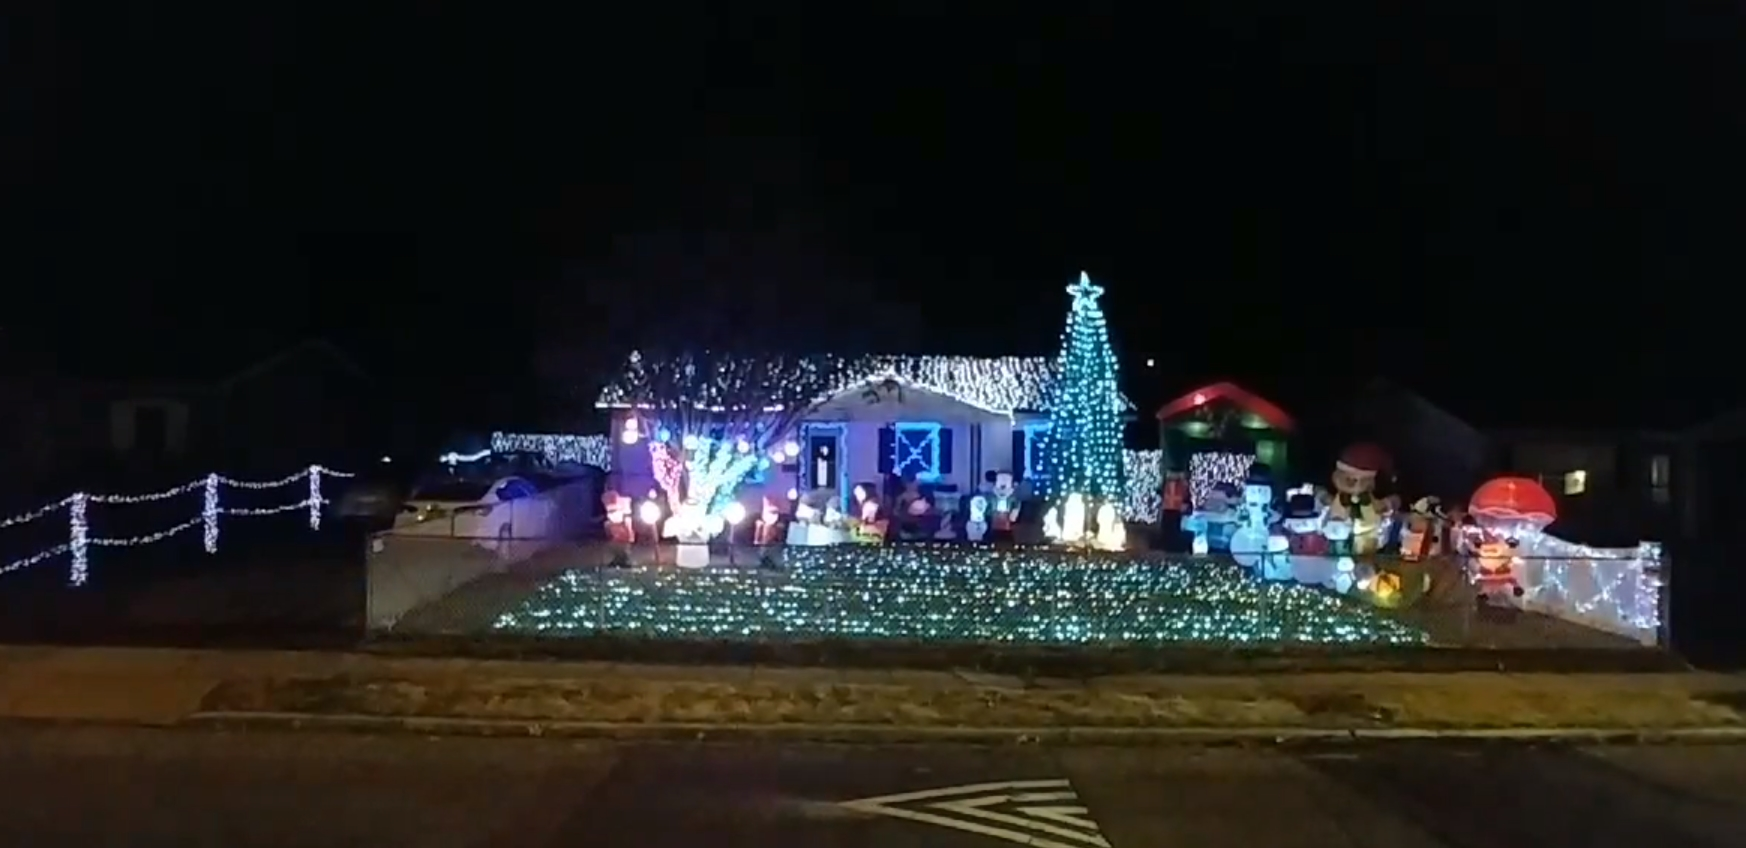 Lower Shore Light Display Holiday Light Shows In Ocean County NJ